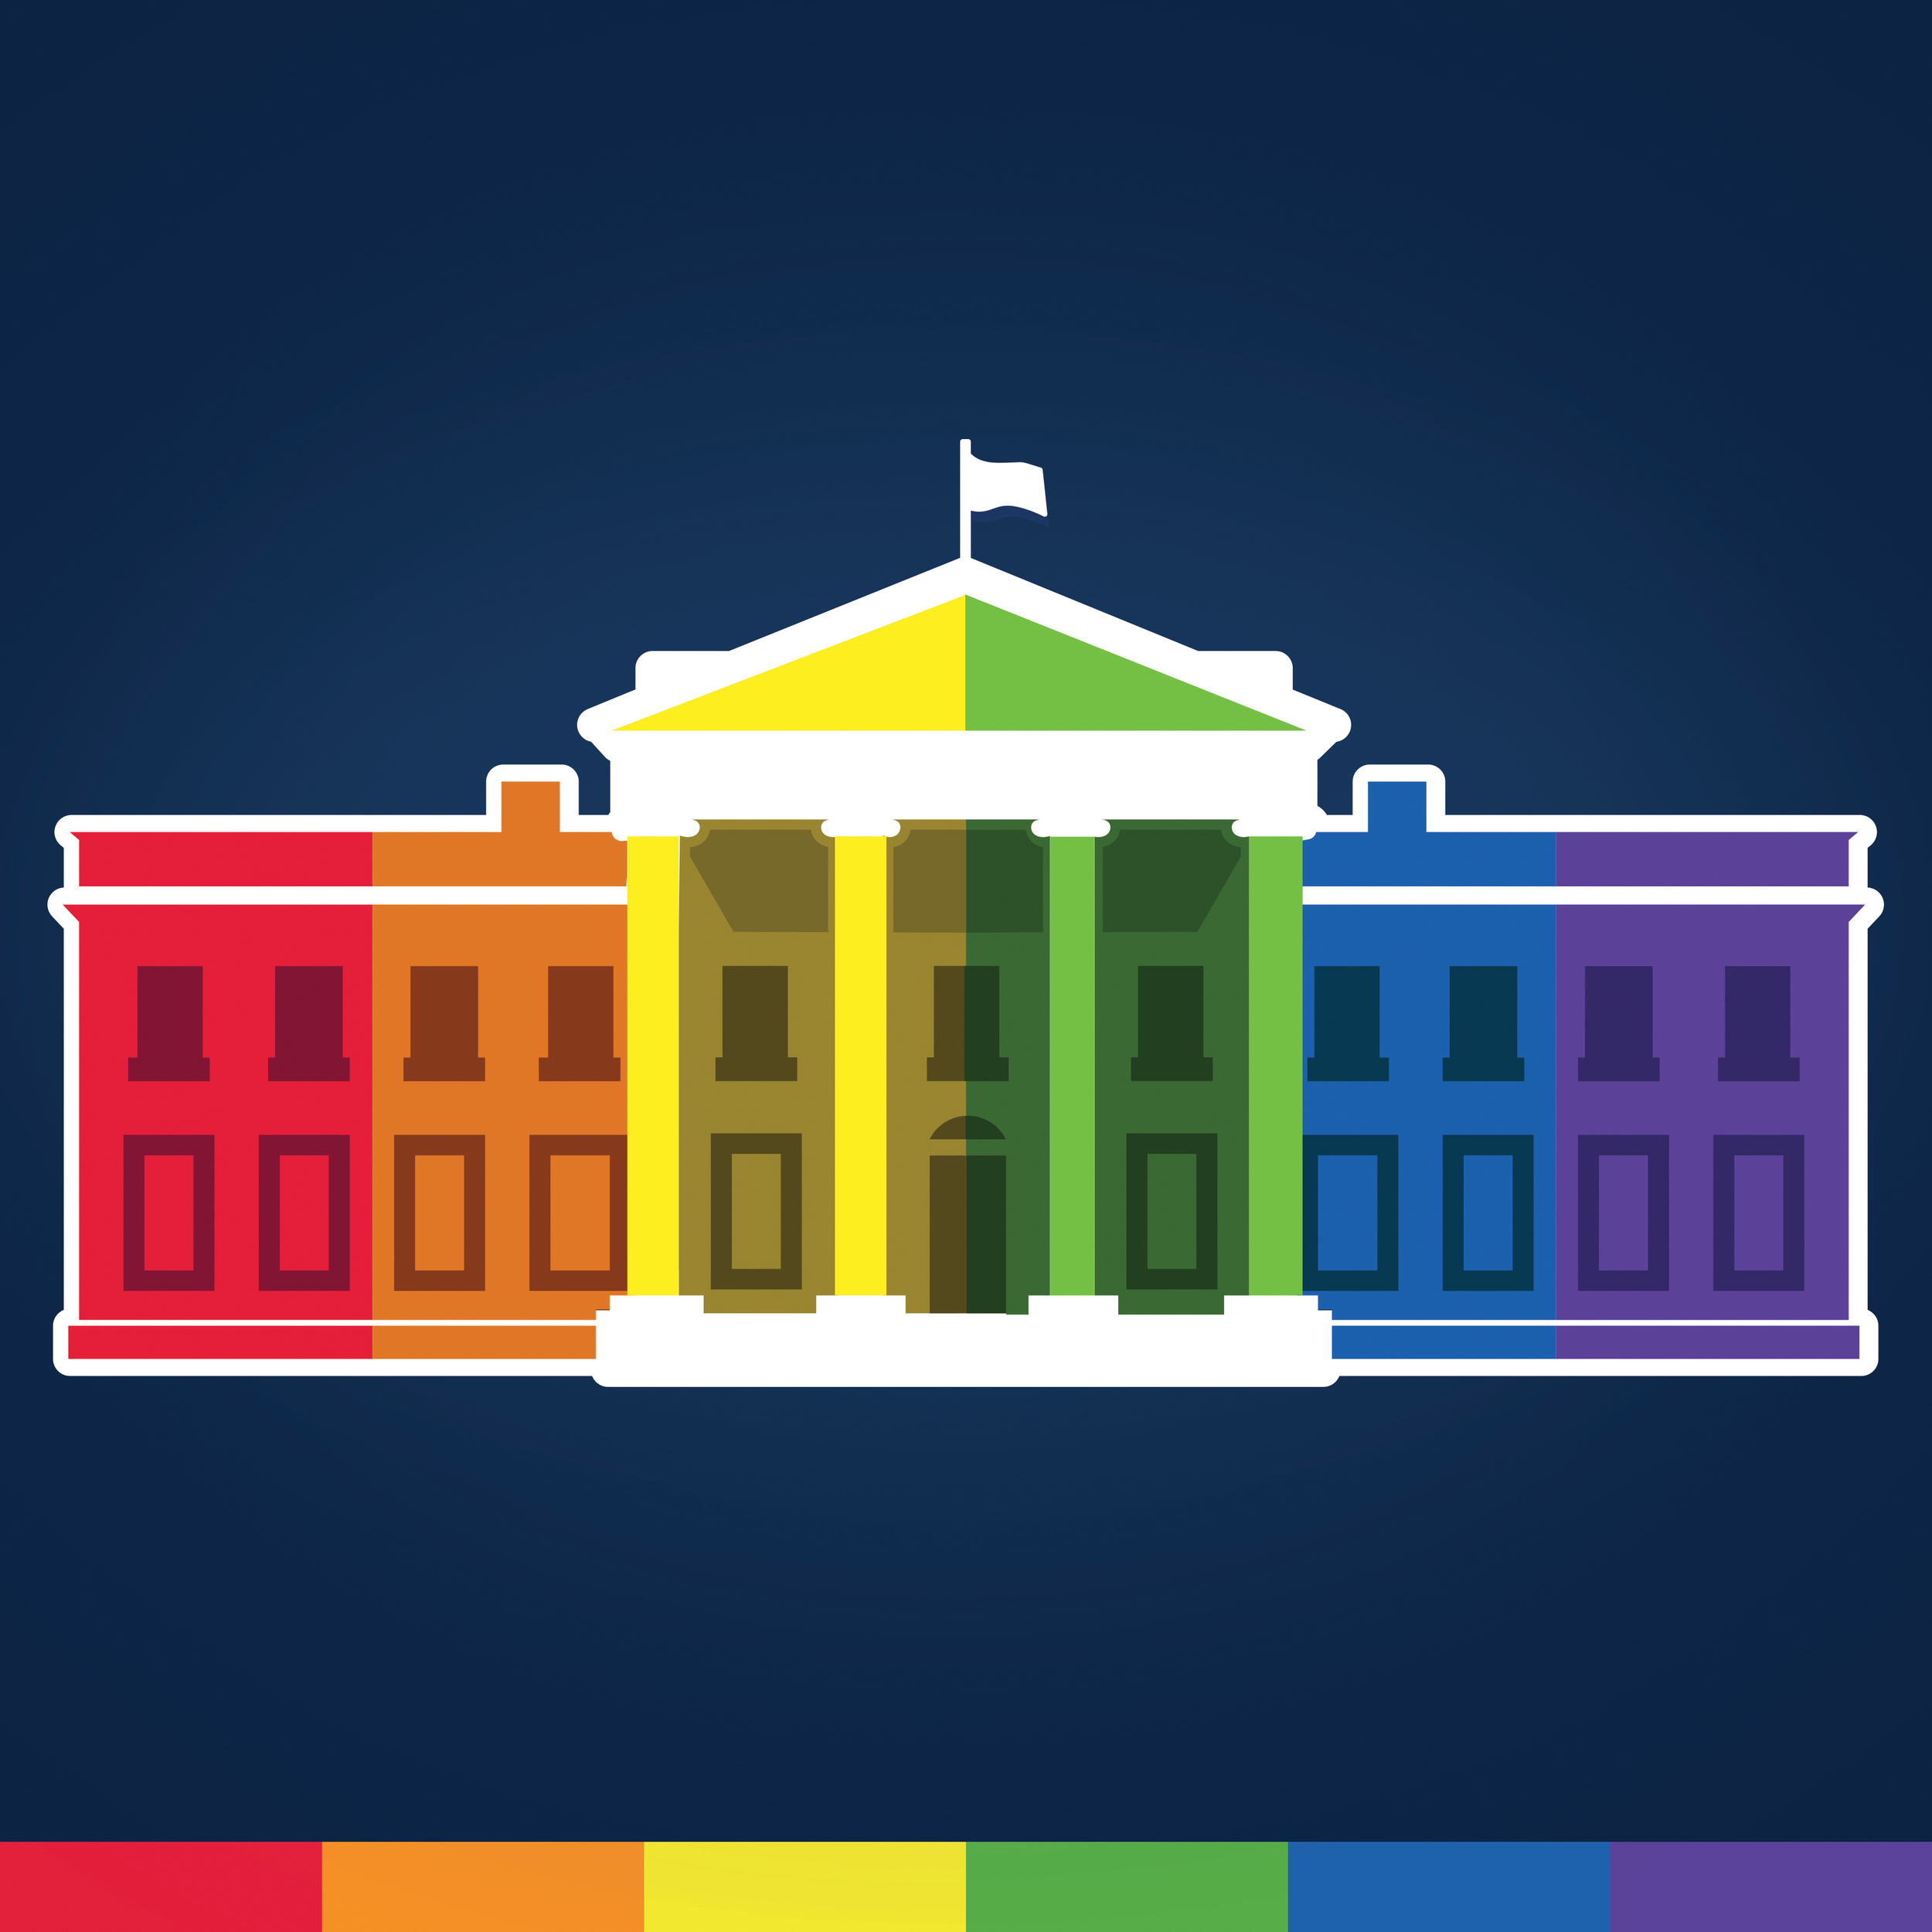 Tens of thousands around the world joined the White House in changing their profile picture to this one — in a show of solidarity and support for the LGBT community.